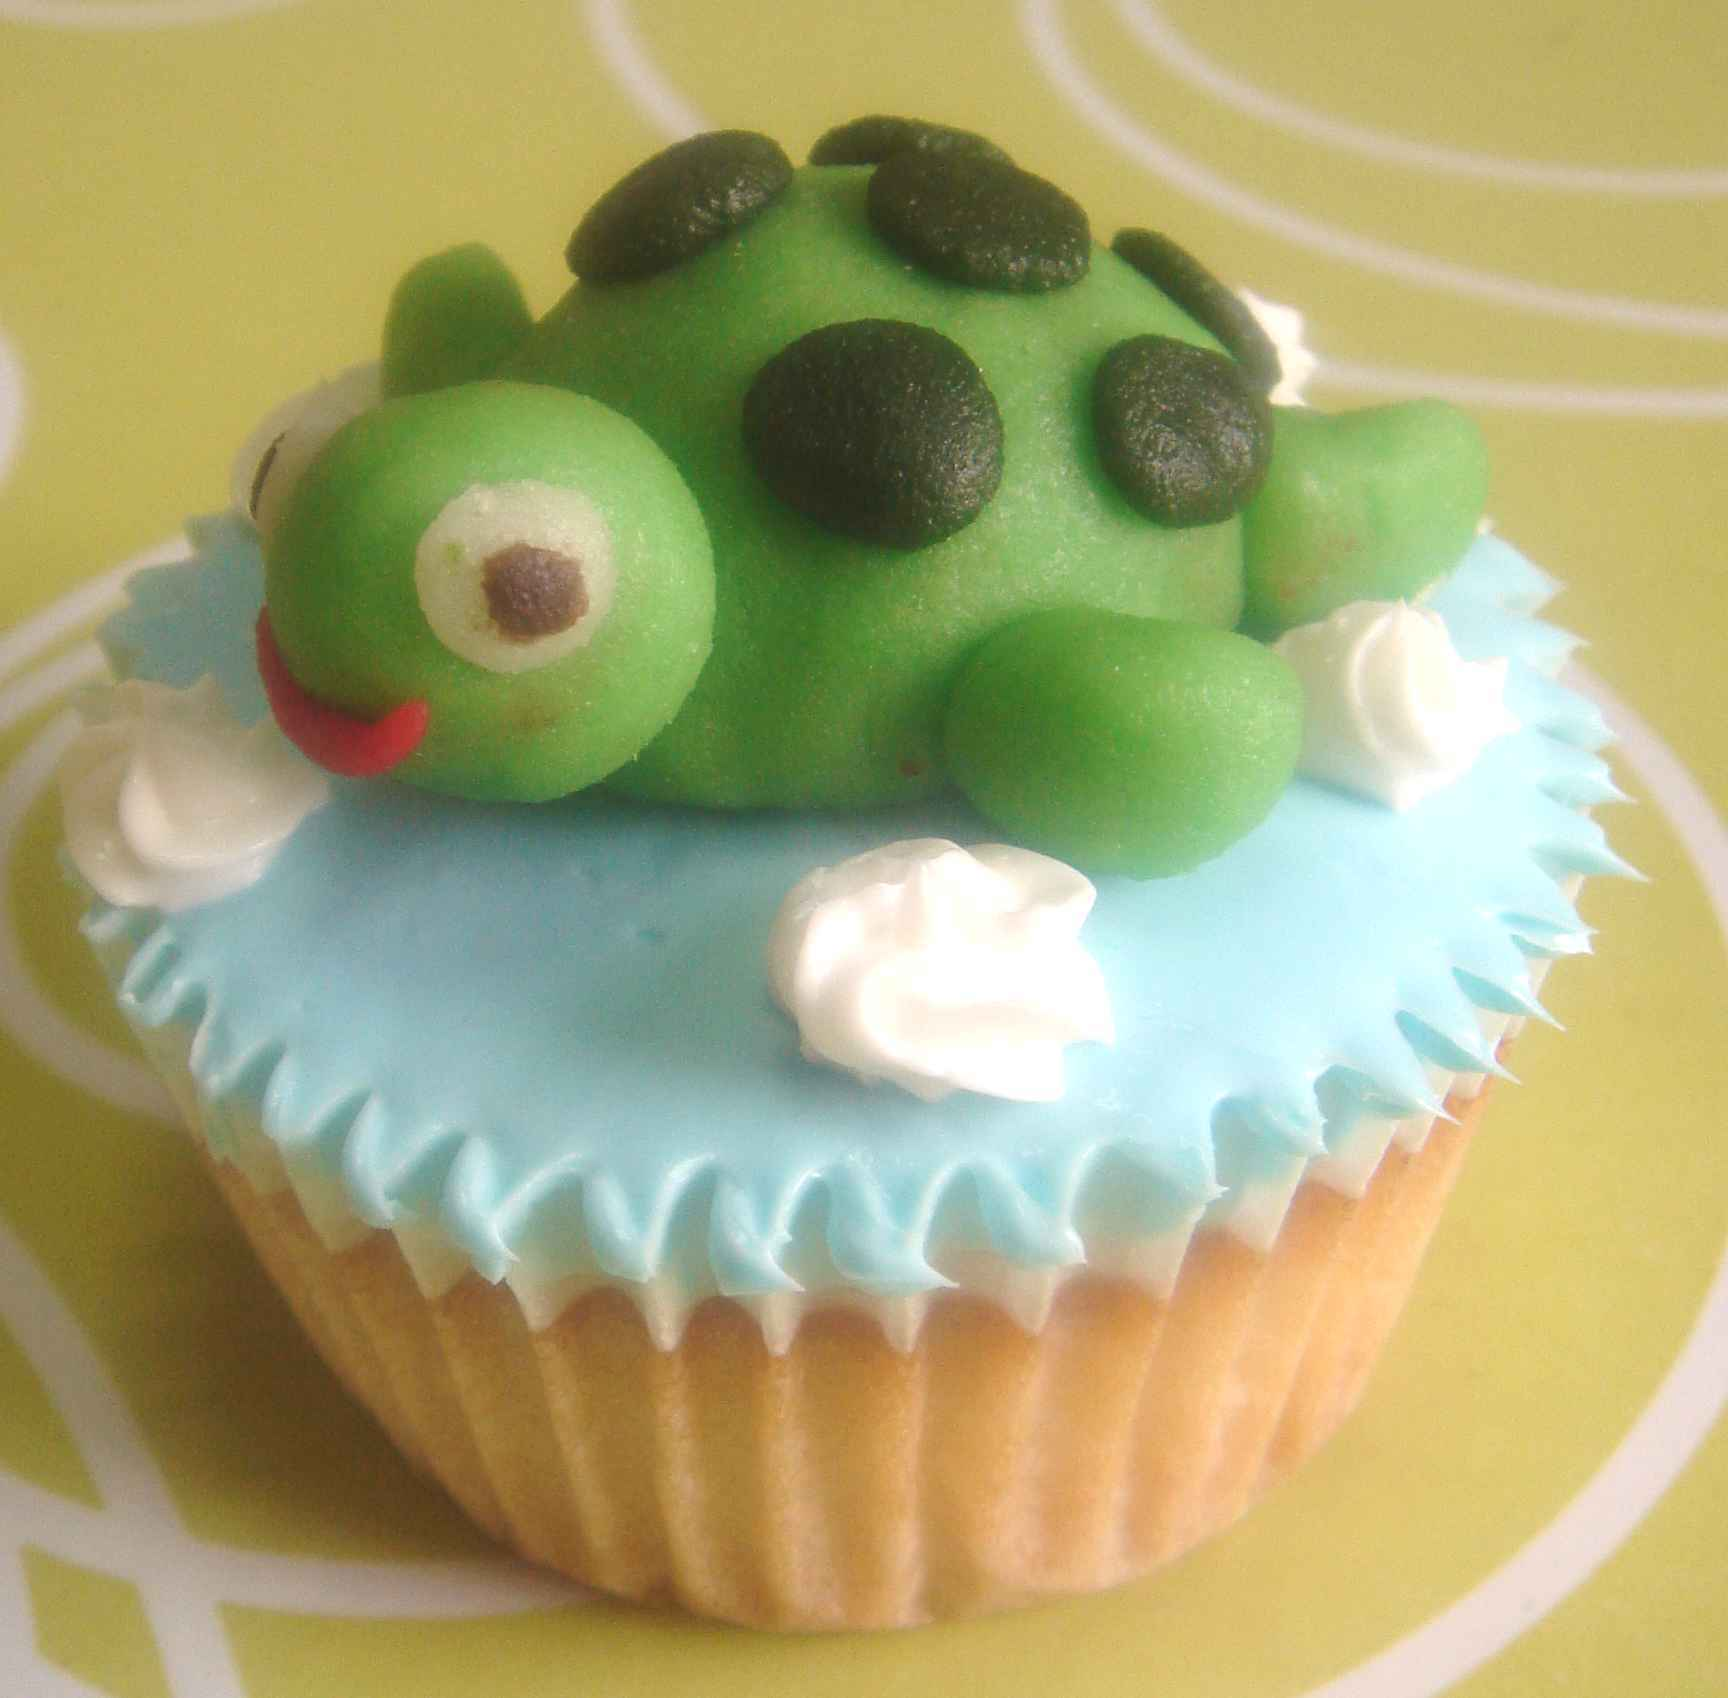 Cute Cupcakes images turtle HD wallpaper and background photos